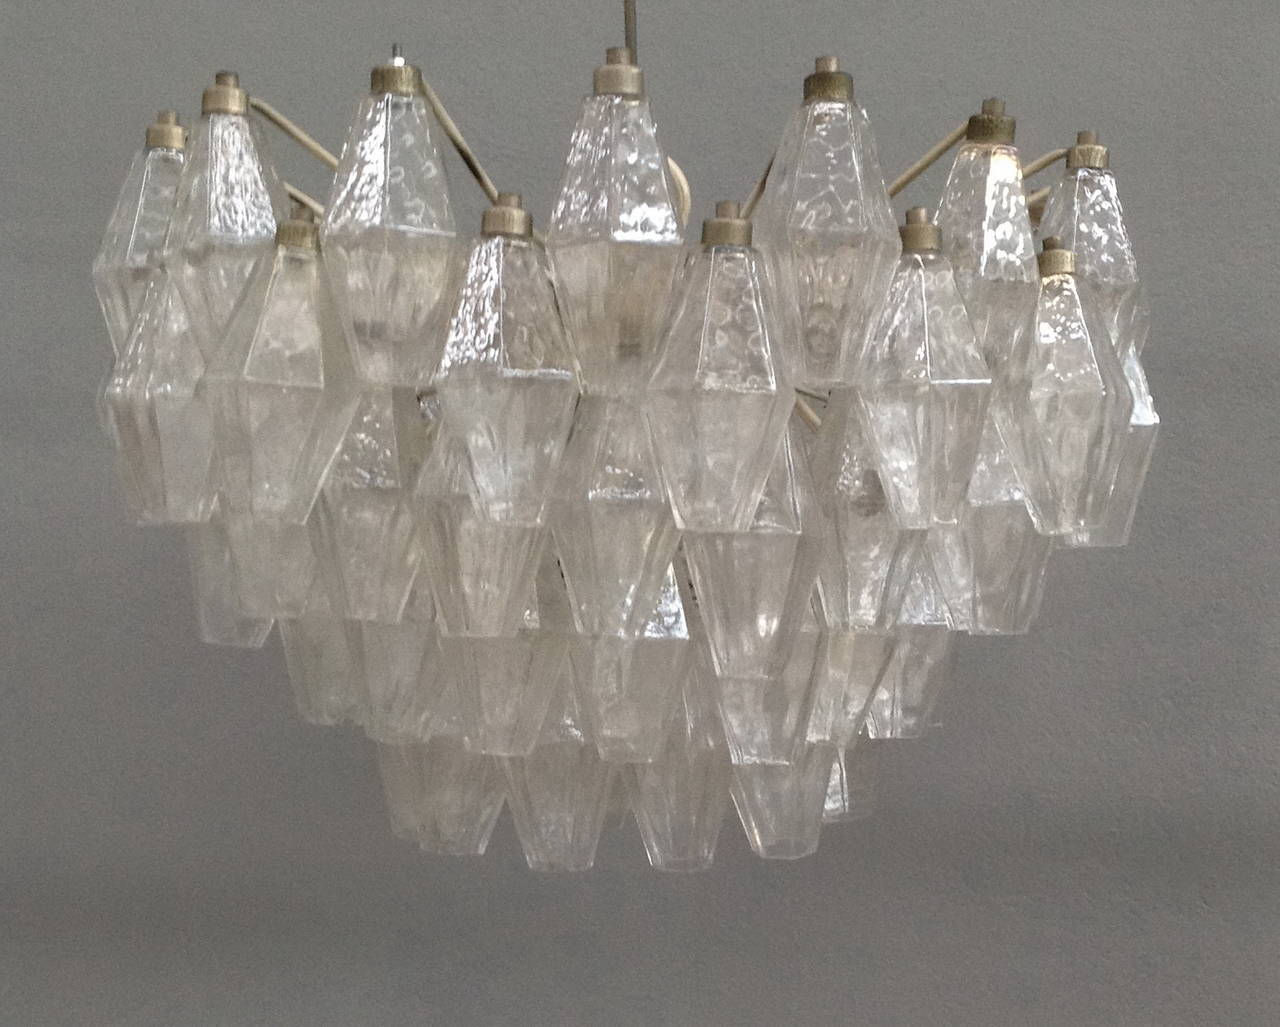 Murano polyhedral glasses chandelier attributed to carlo scarpa for murano glass chandelier with eight lights five tiers glasses are all clear aloadofball